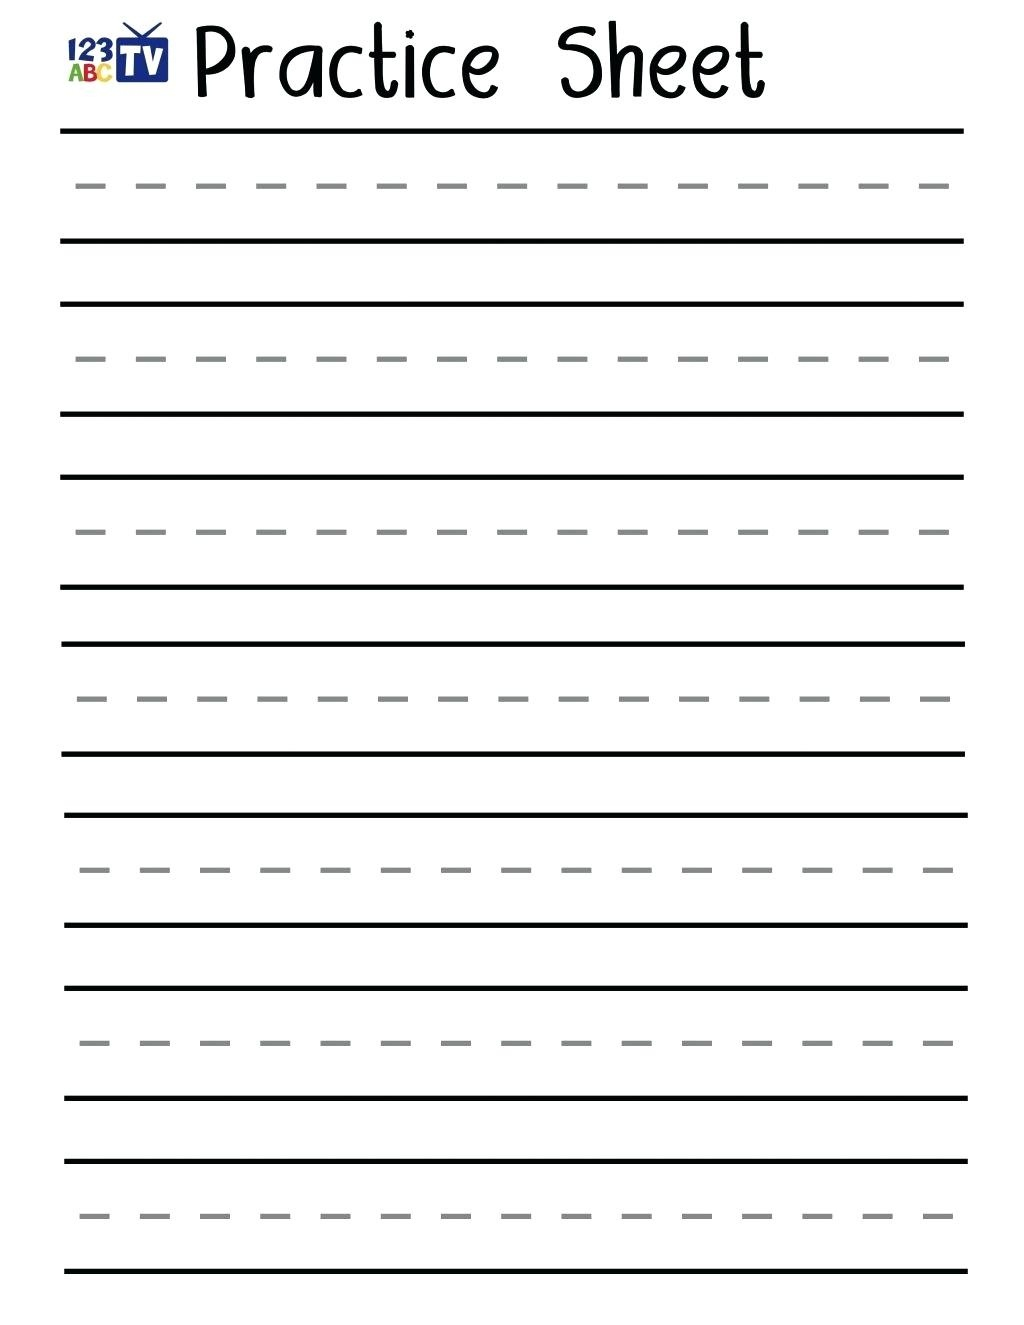 Practice Writing Sheets – Shoppingforu.club - Free Printable Writing Sheets